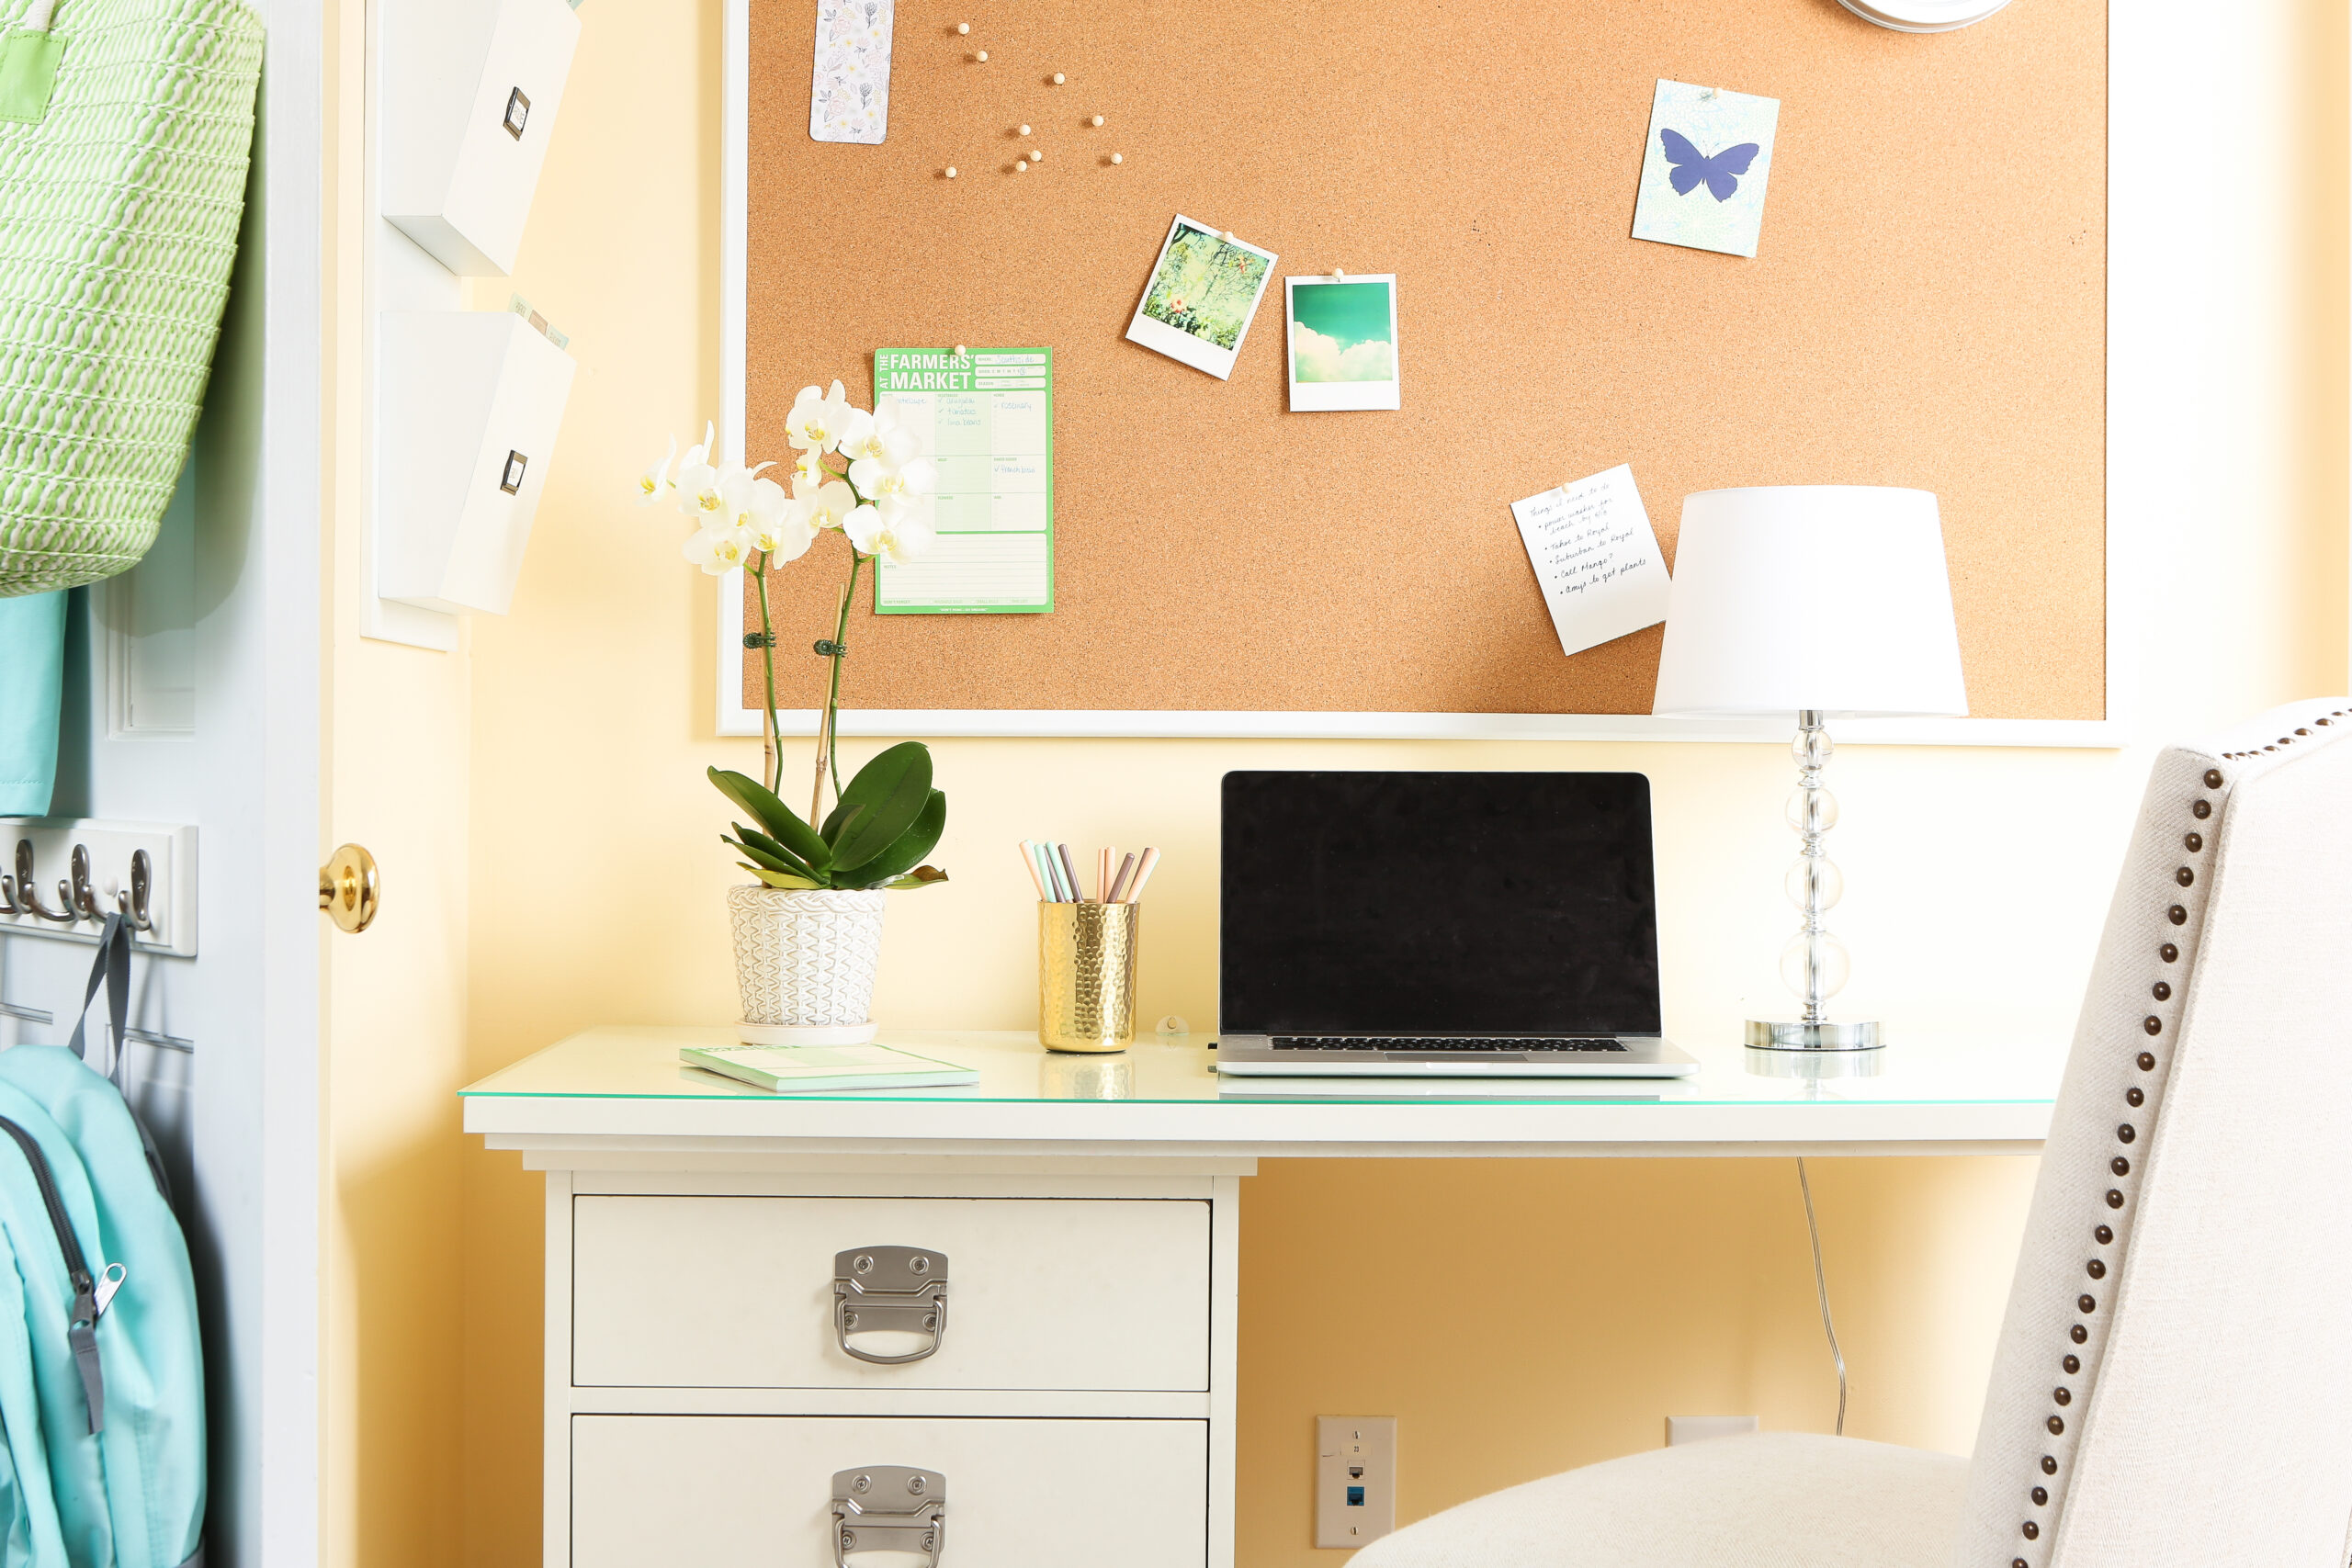 Organized desk with computer and potted plant